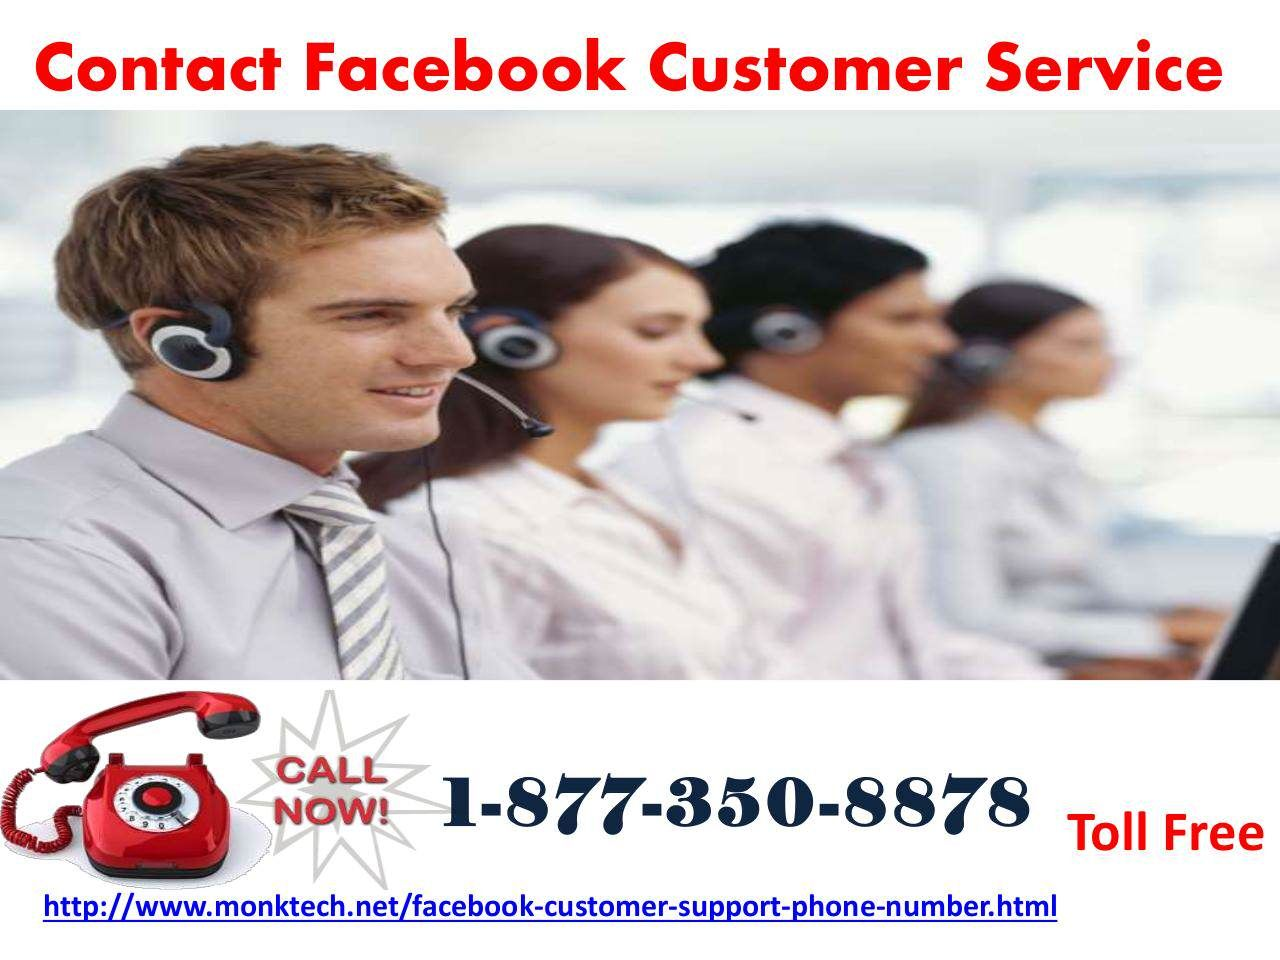 Contact Facebook Customer Service Team To lucid Technical